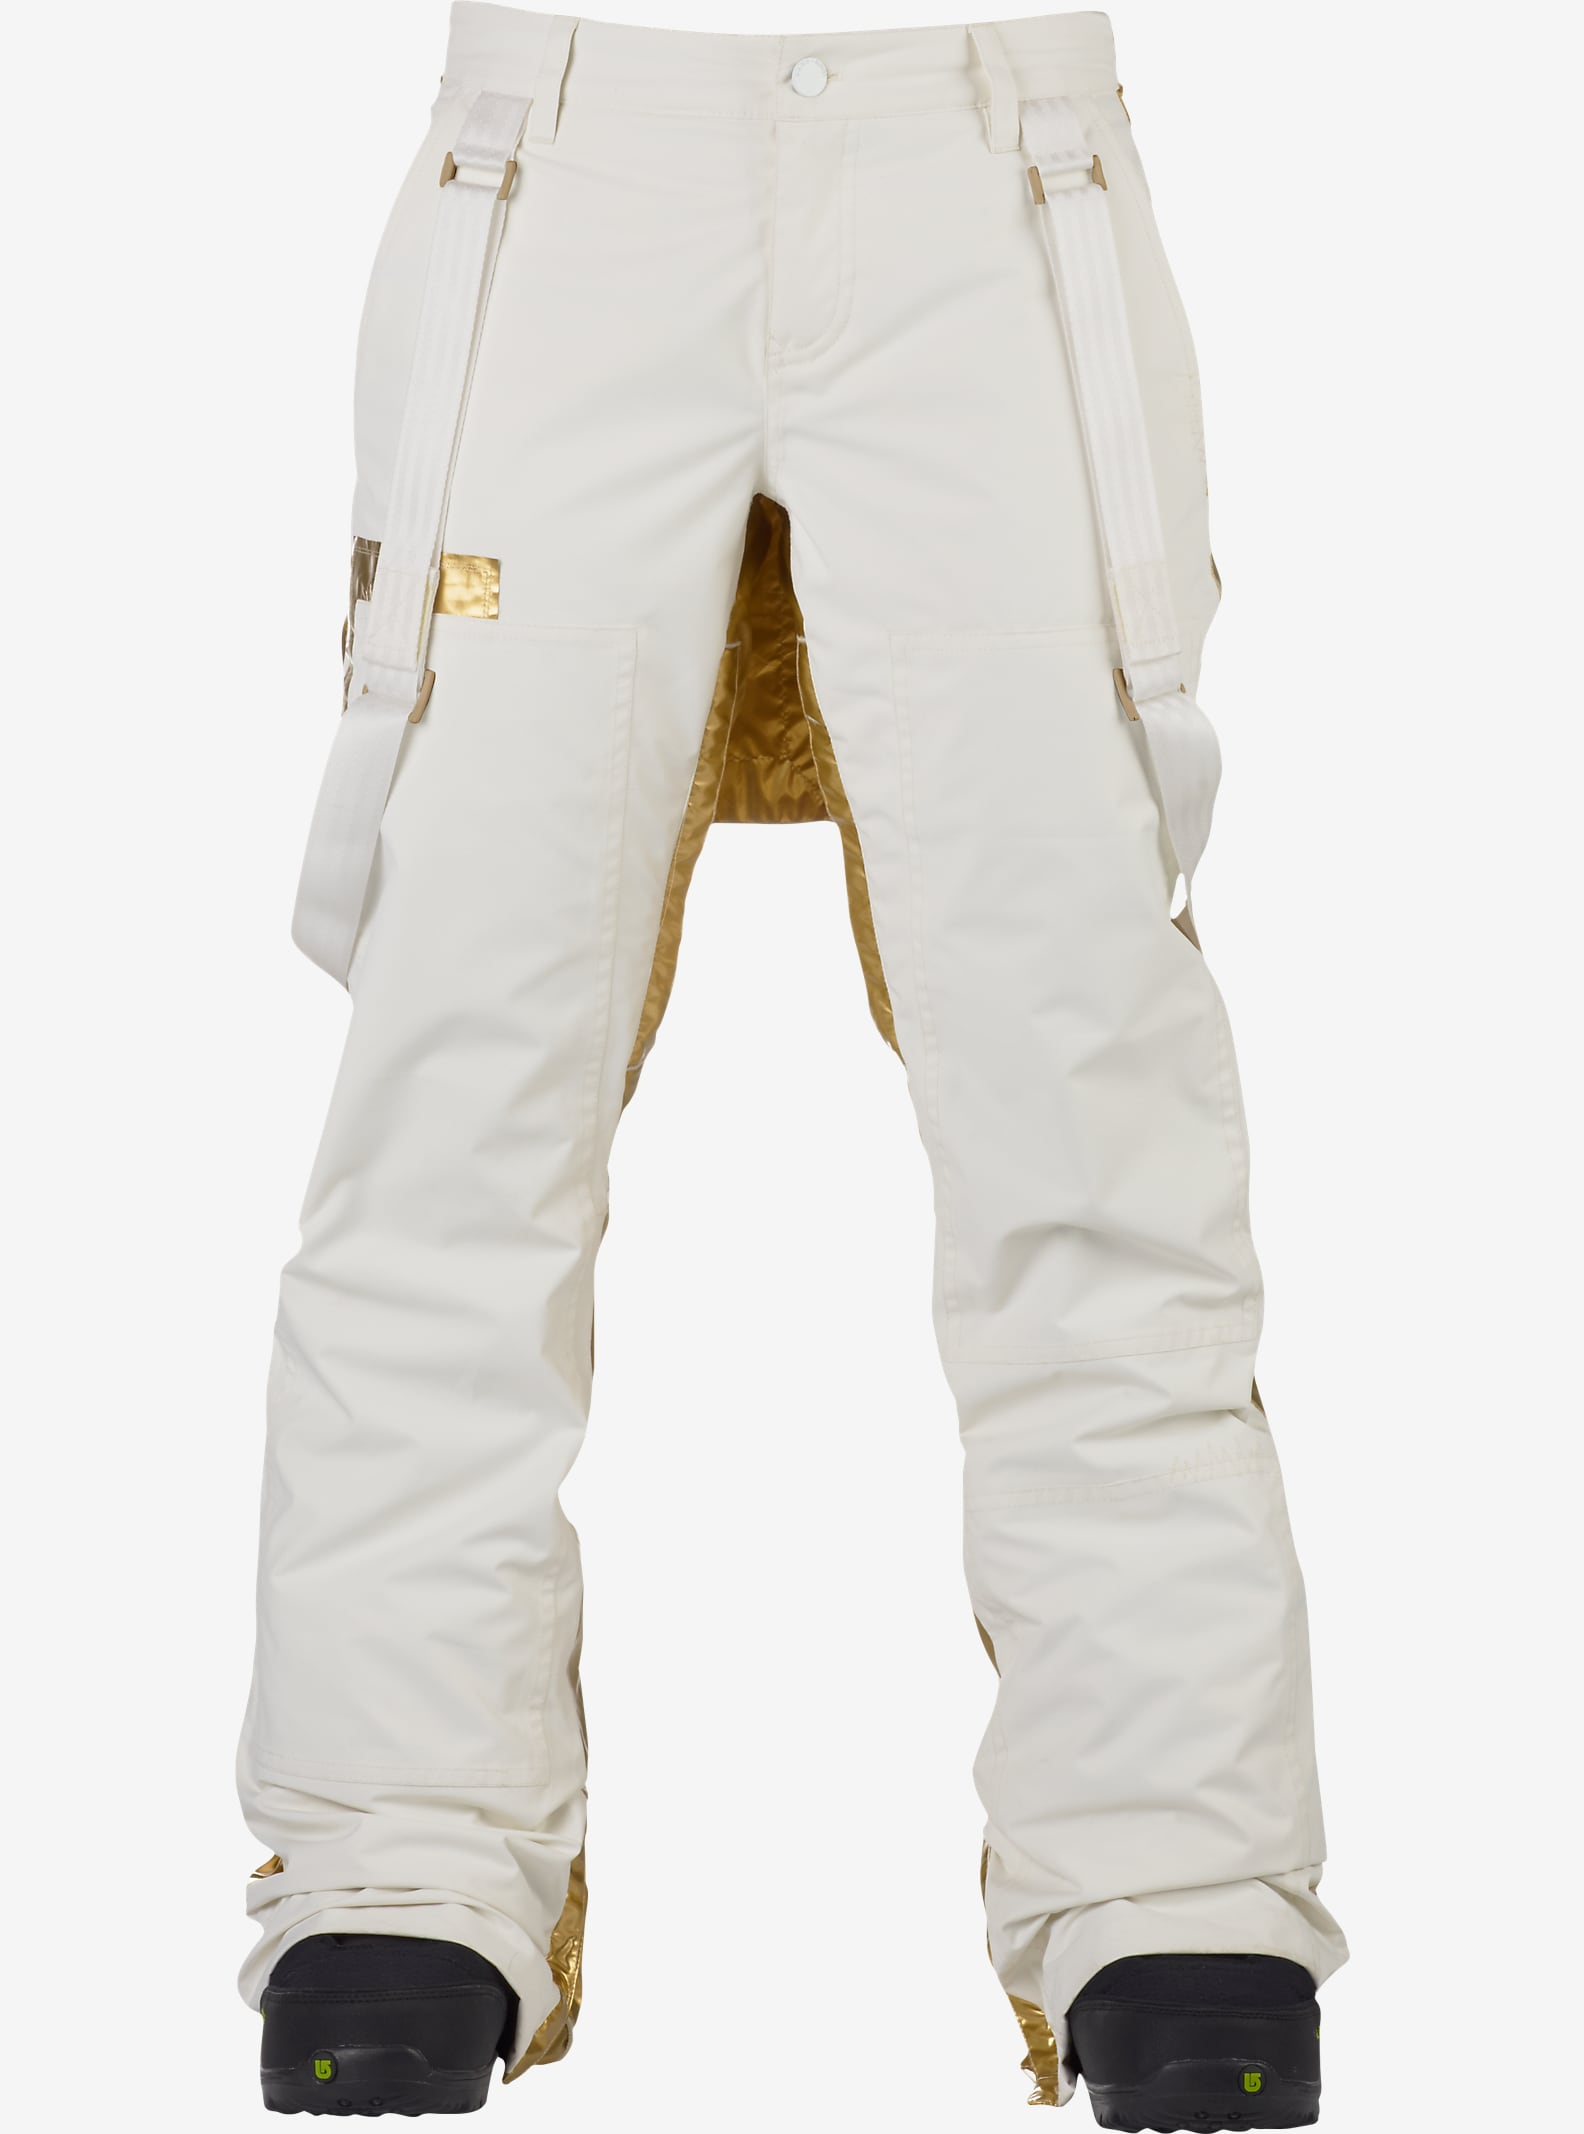 L.A.M.B. x Burton Johnny Pant shown in Stout White / Gold